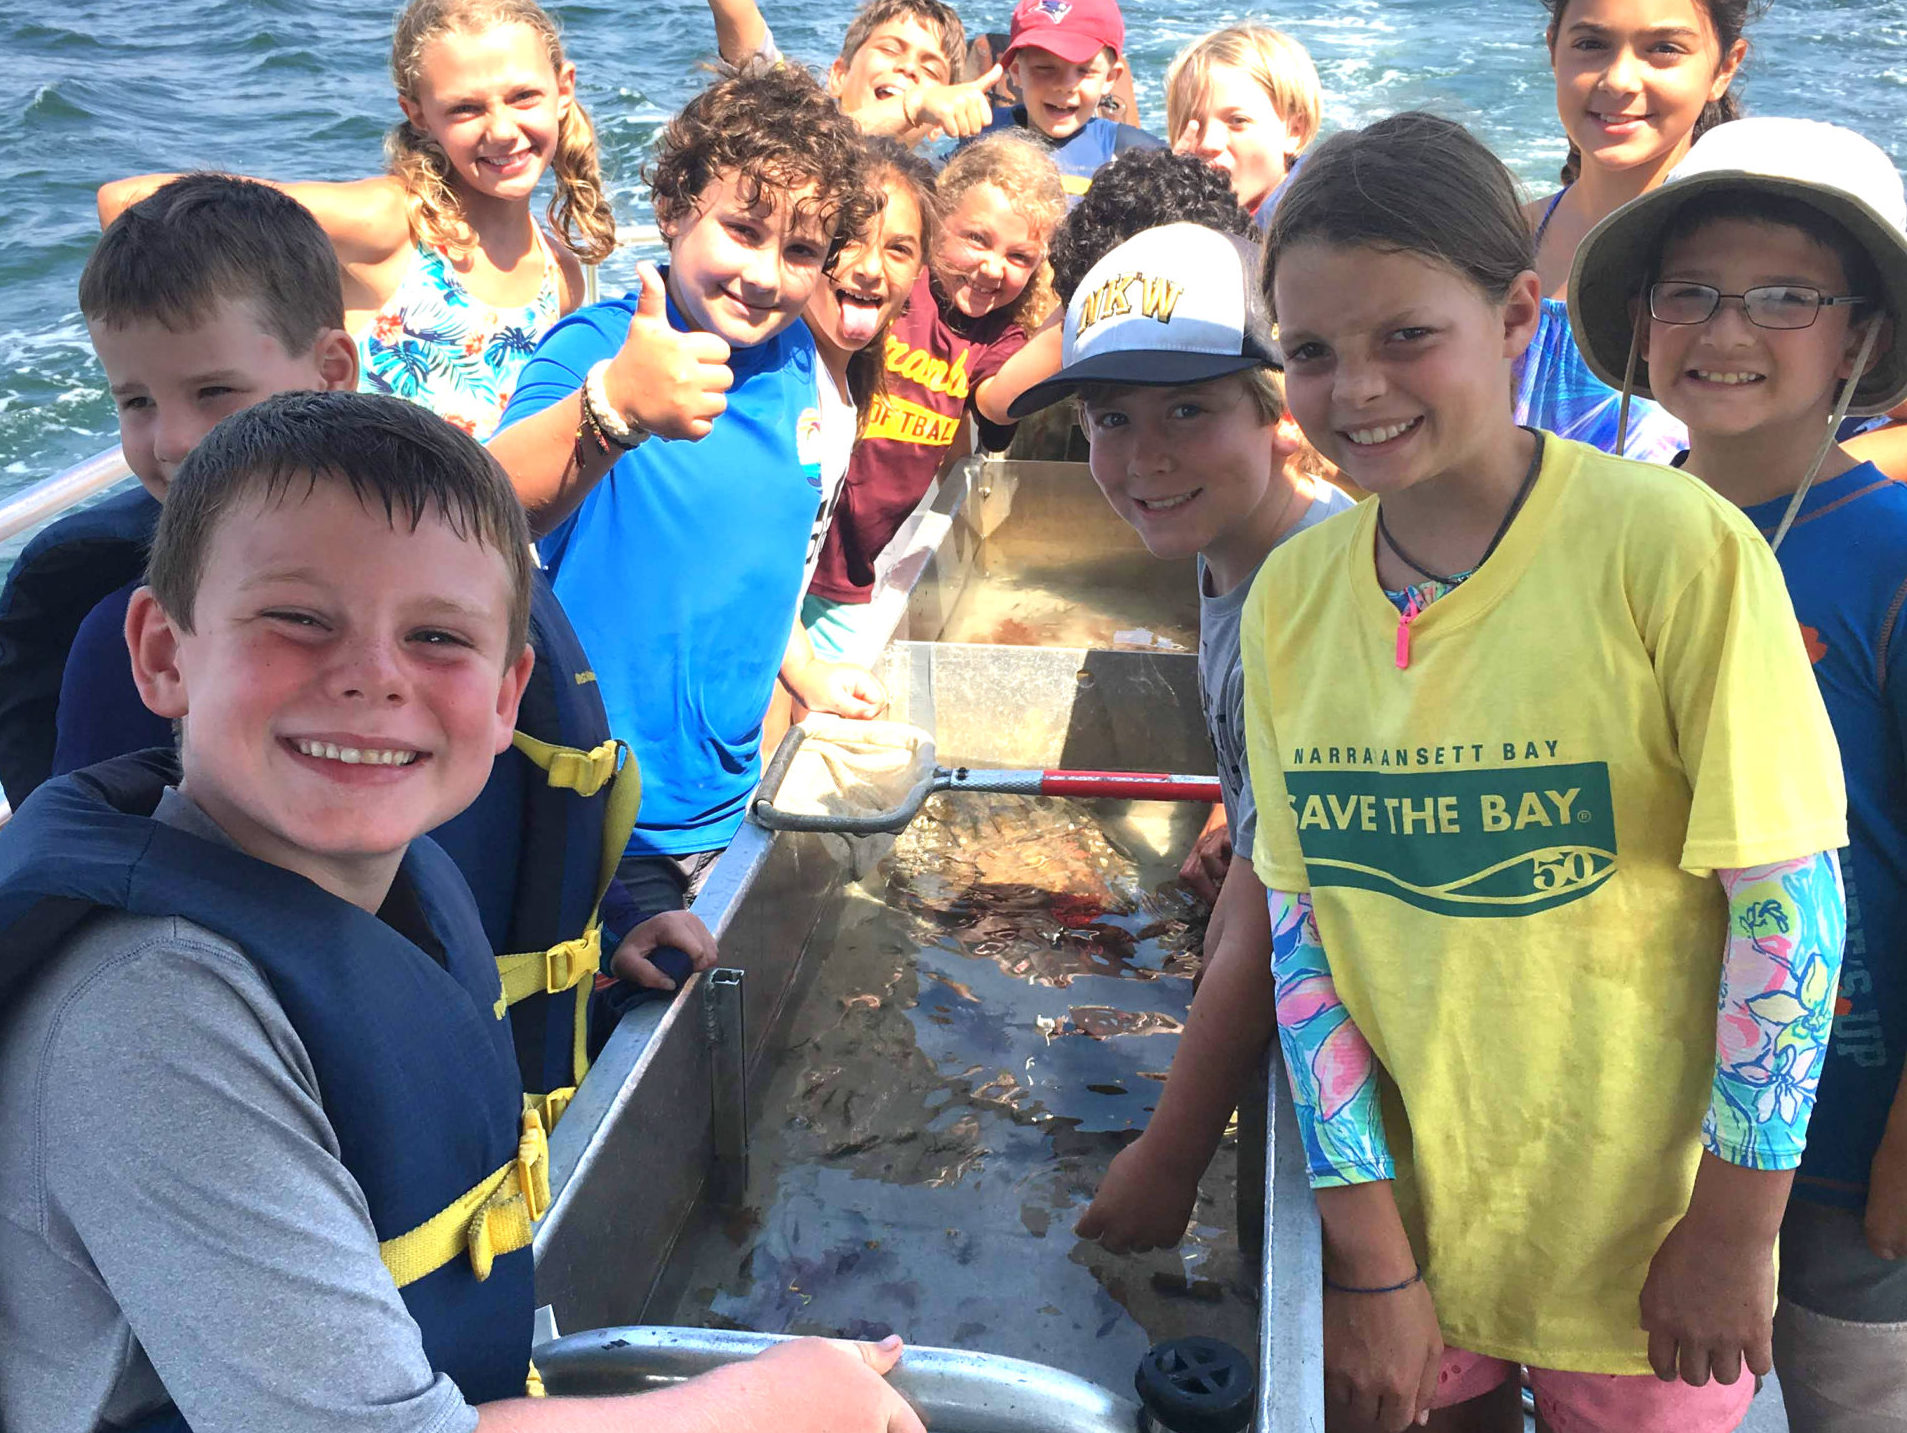 2019 BayCampers enjoy a sunny day on Narragansett Bay